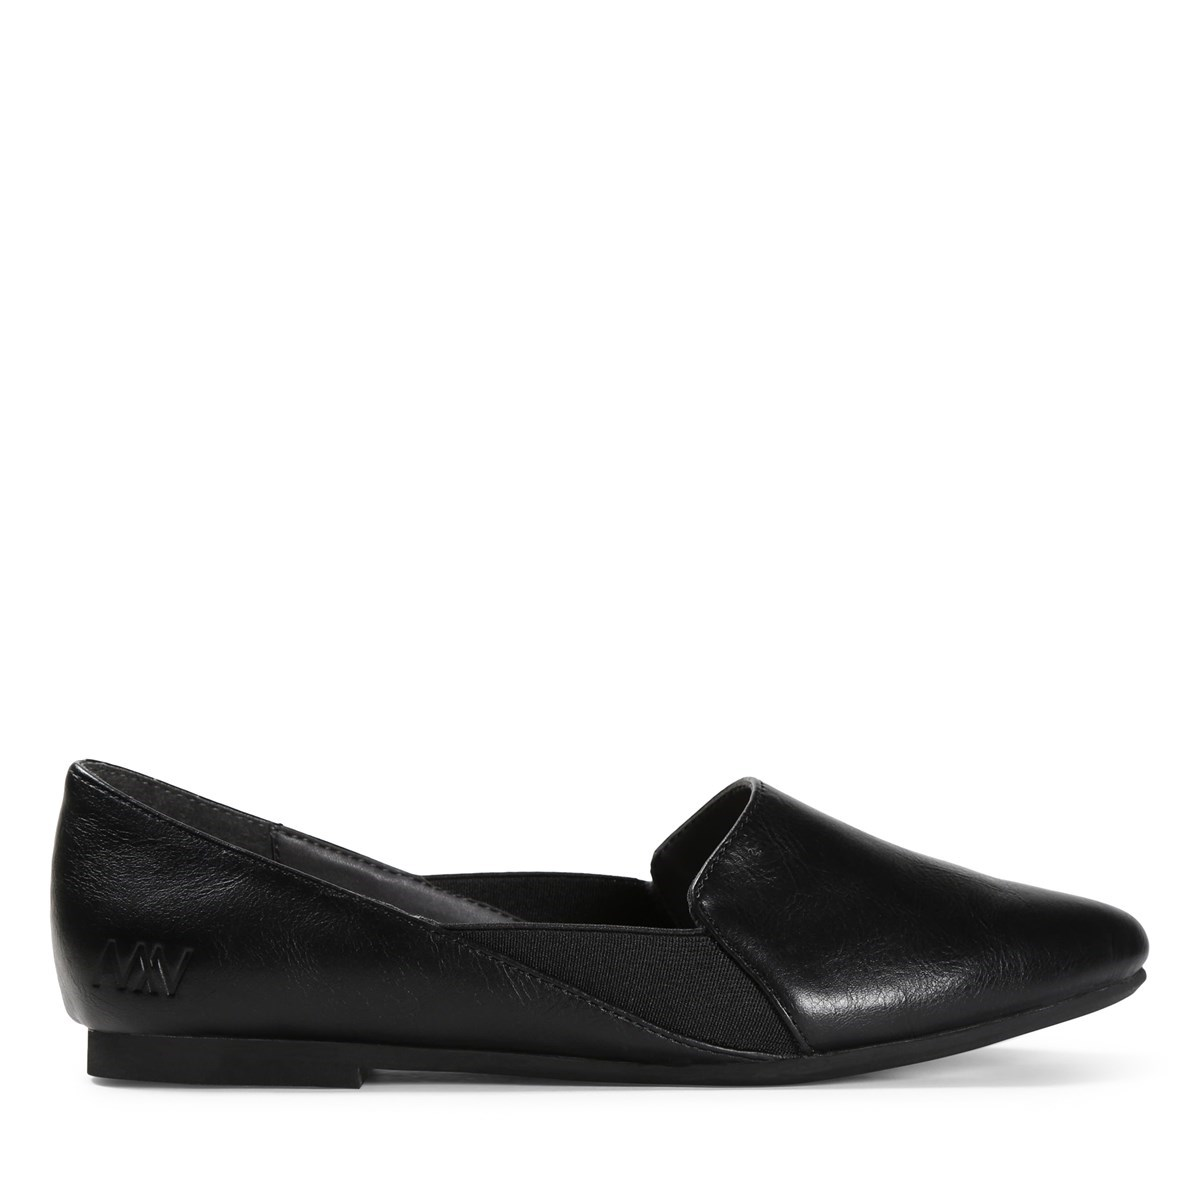 Women's Westmount Flats in Black